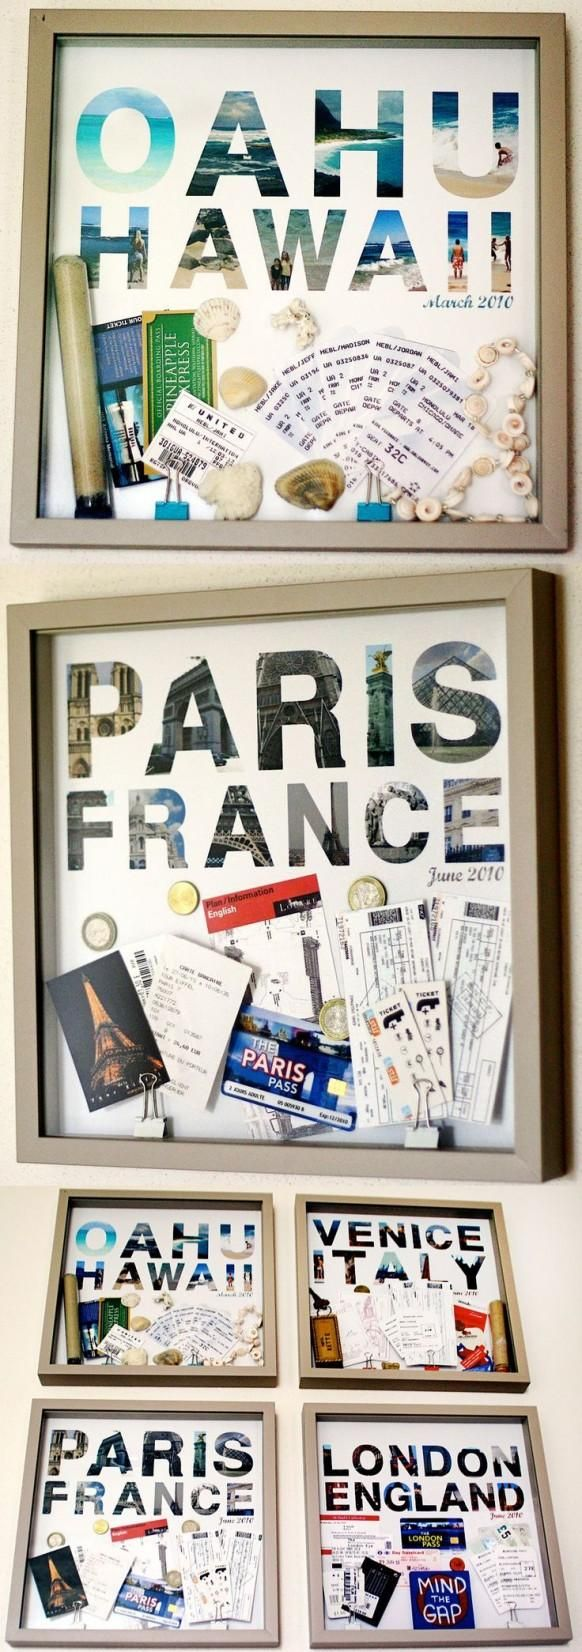 DIY Travel Boards- @Joan Anderson Urie Not sure where you would put these but I feel like they would be right up your alley with all the traveling you crazy kids do!